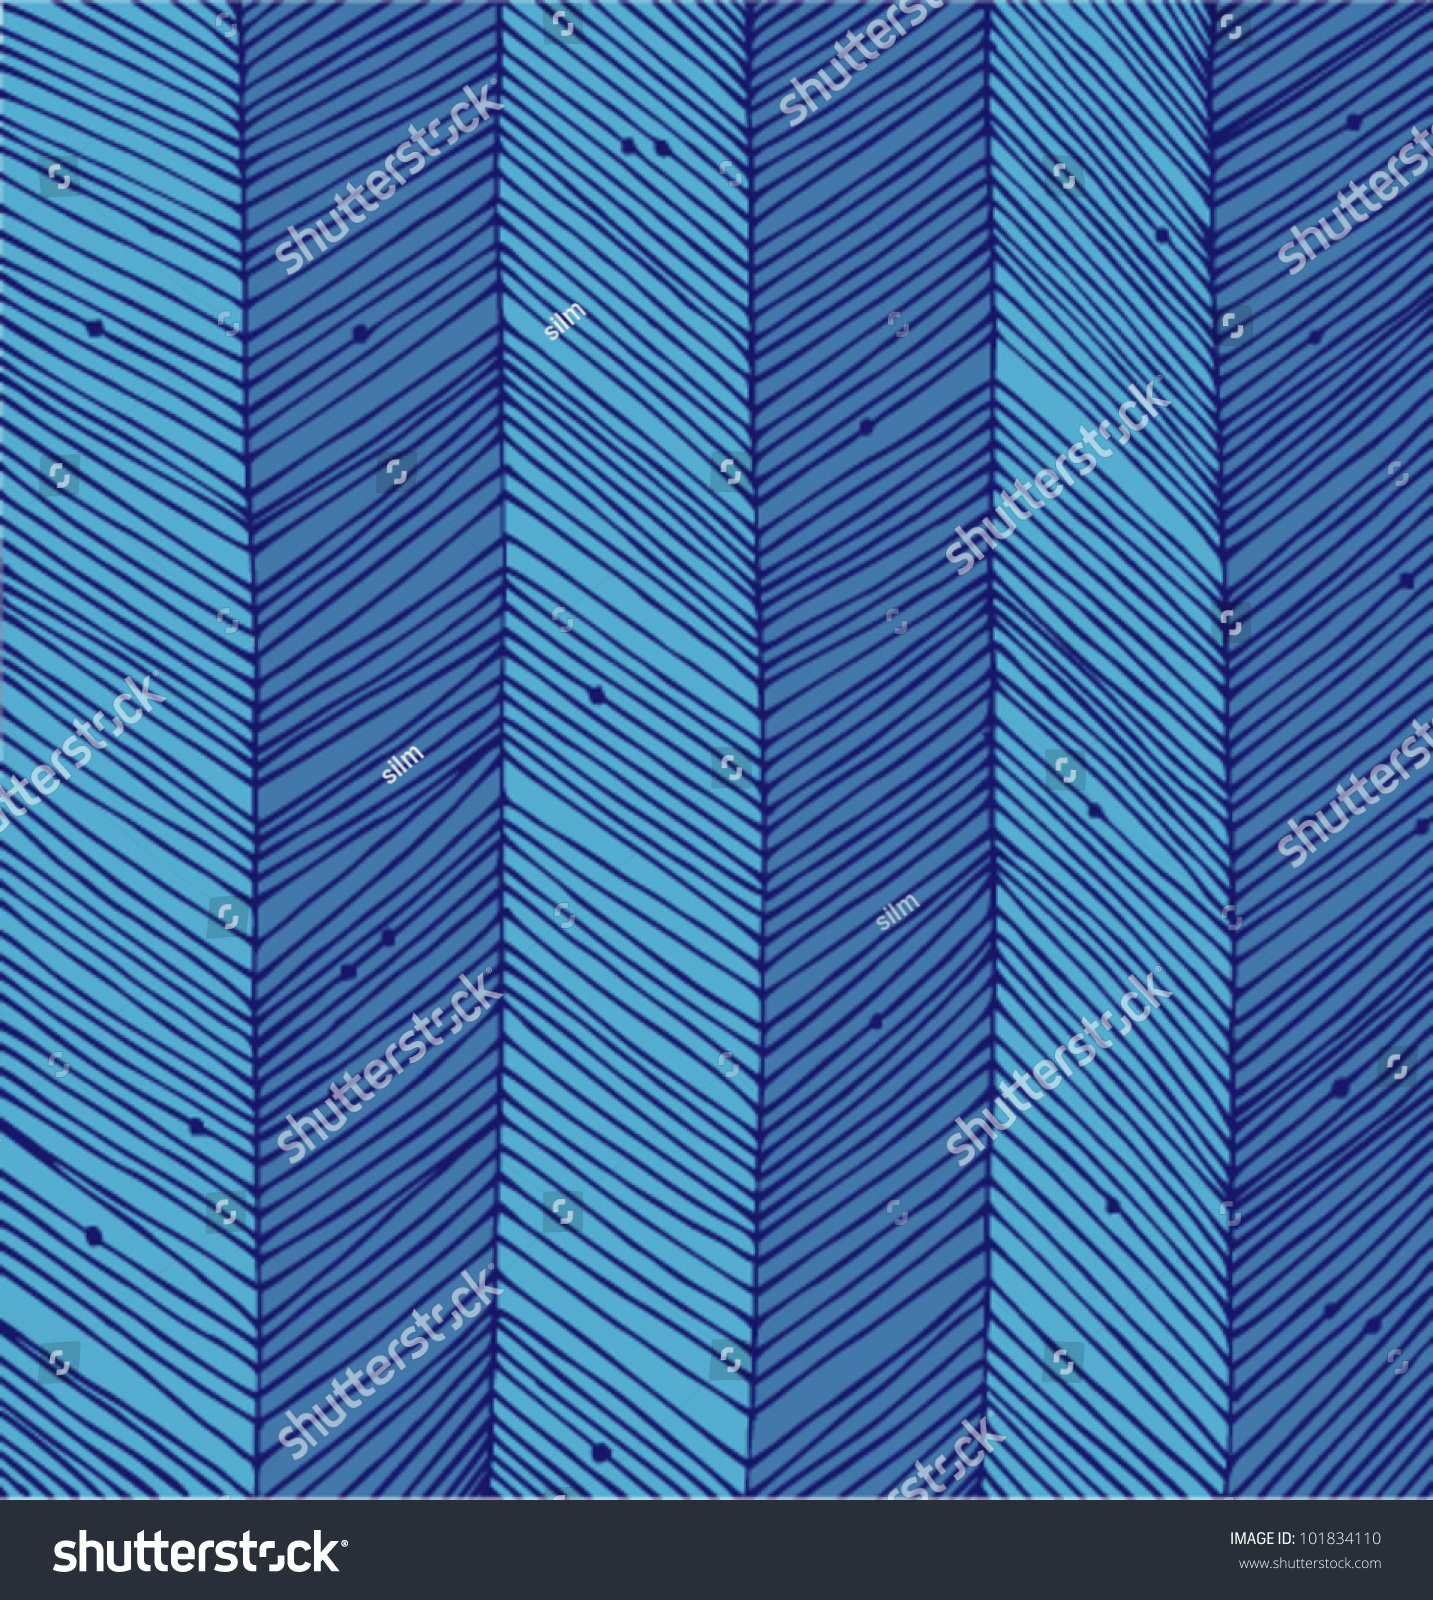 Vertical Lines Blue Texture Background Wallpapers 101834110